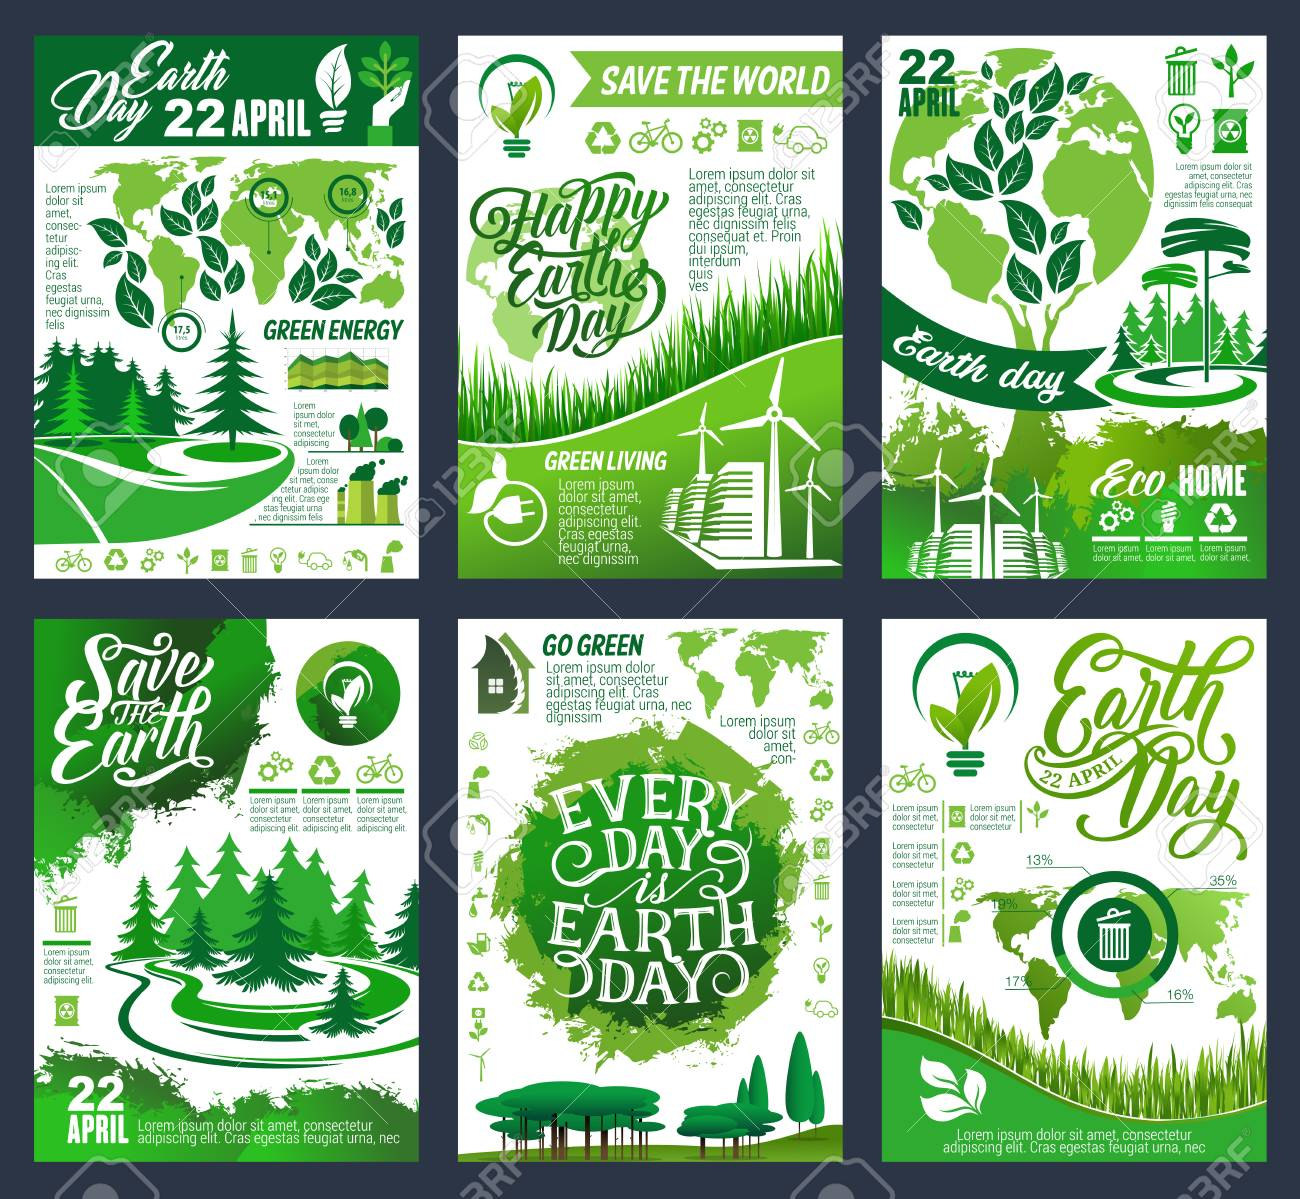 Earth Day Eco Banner Of Save Planet And Go Green Concept Ecology Royalty Free Cliparts Vectors And Stock Illustration Image 126298065